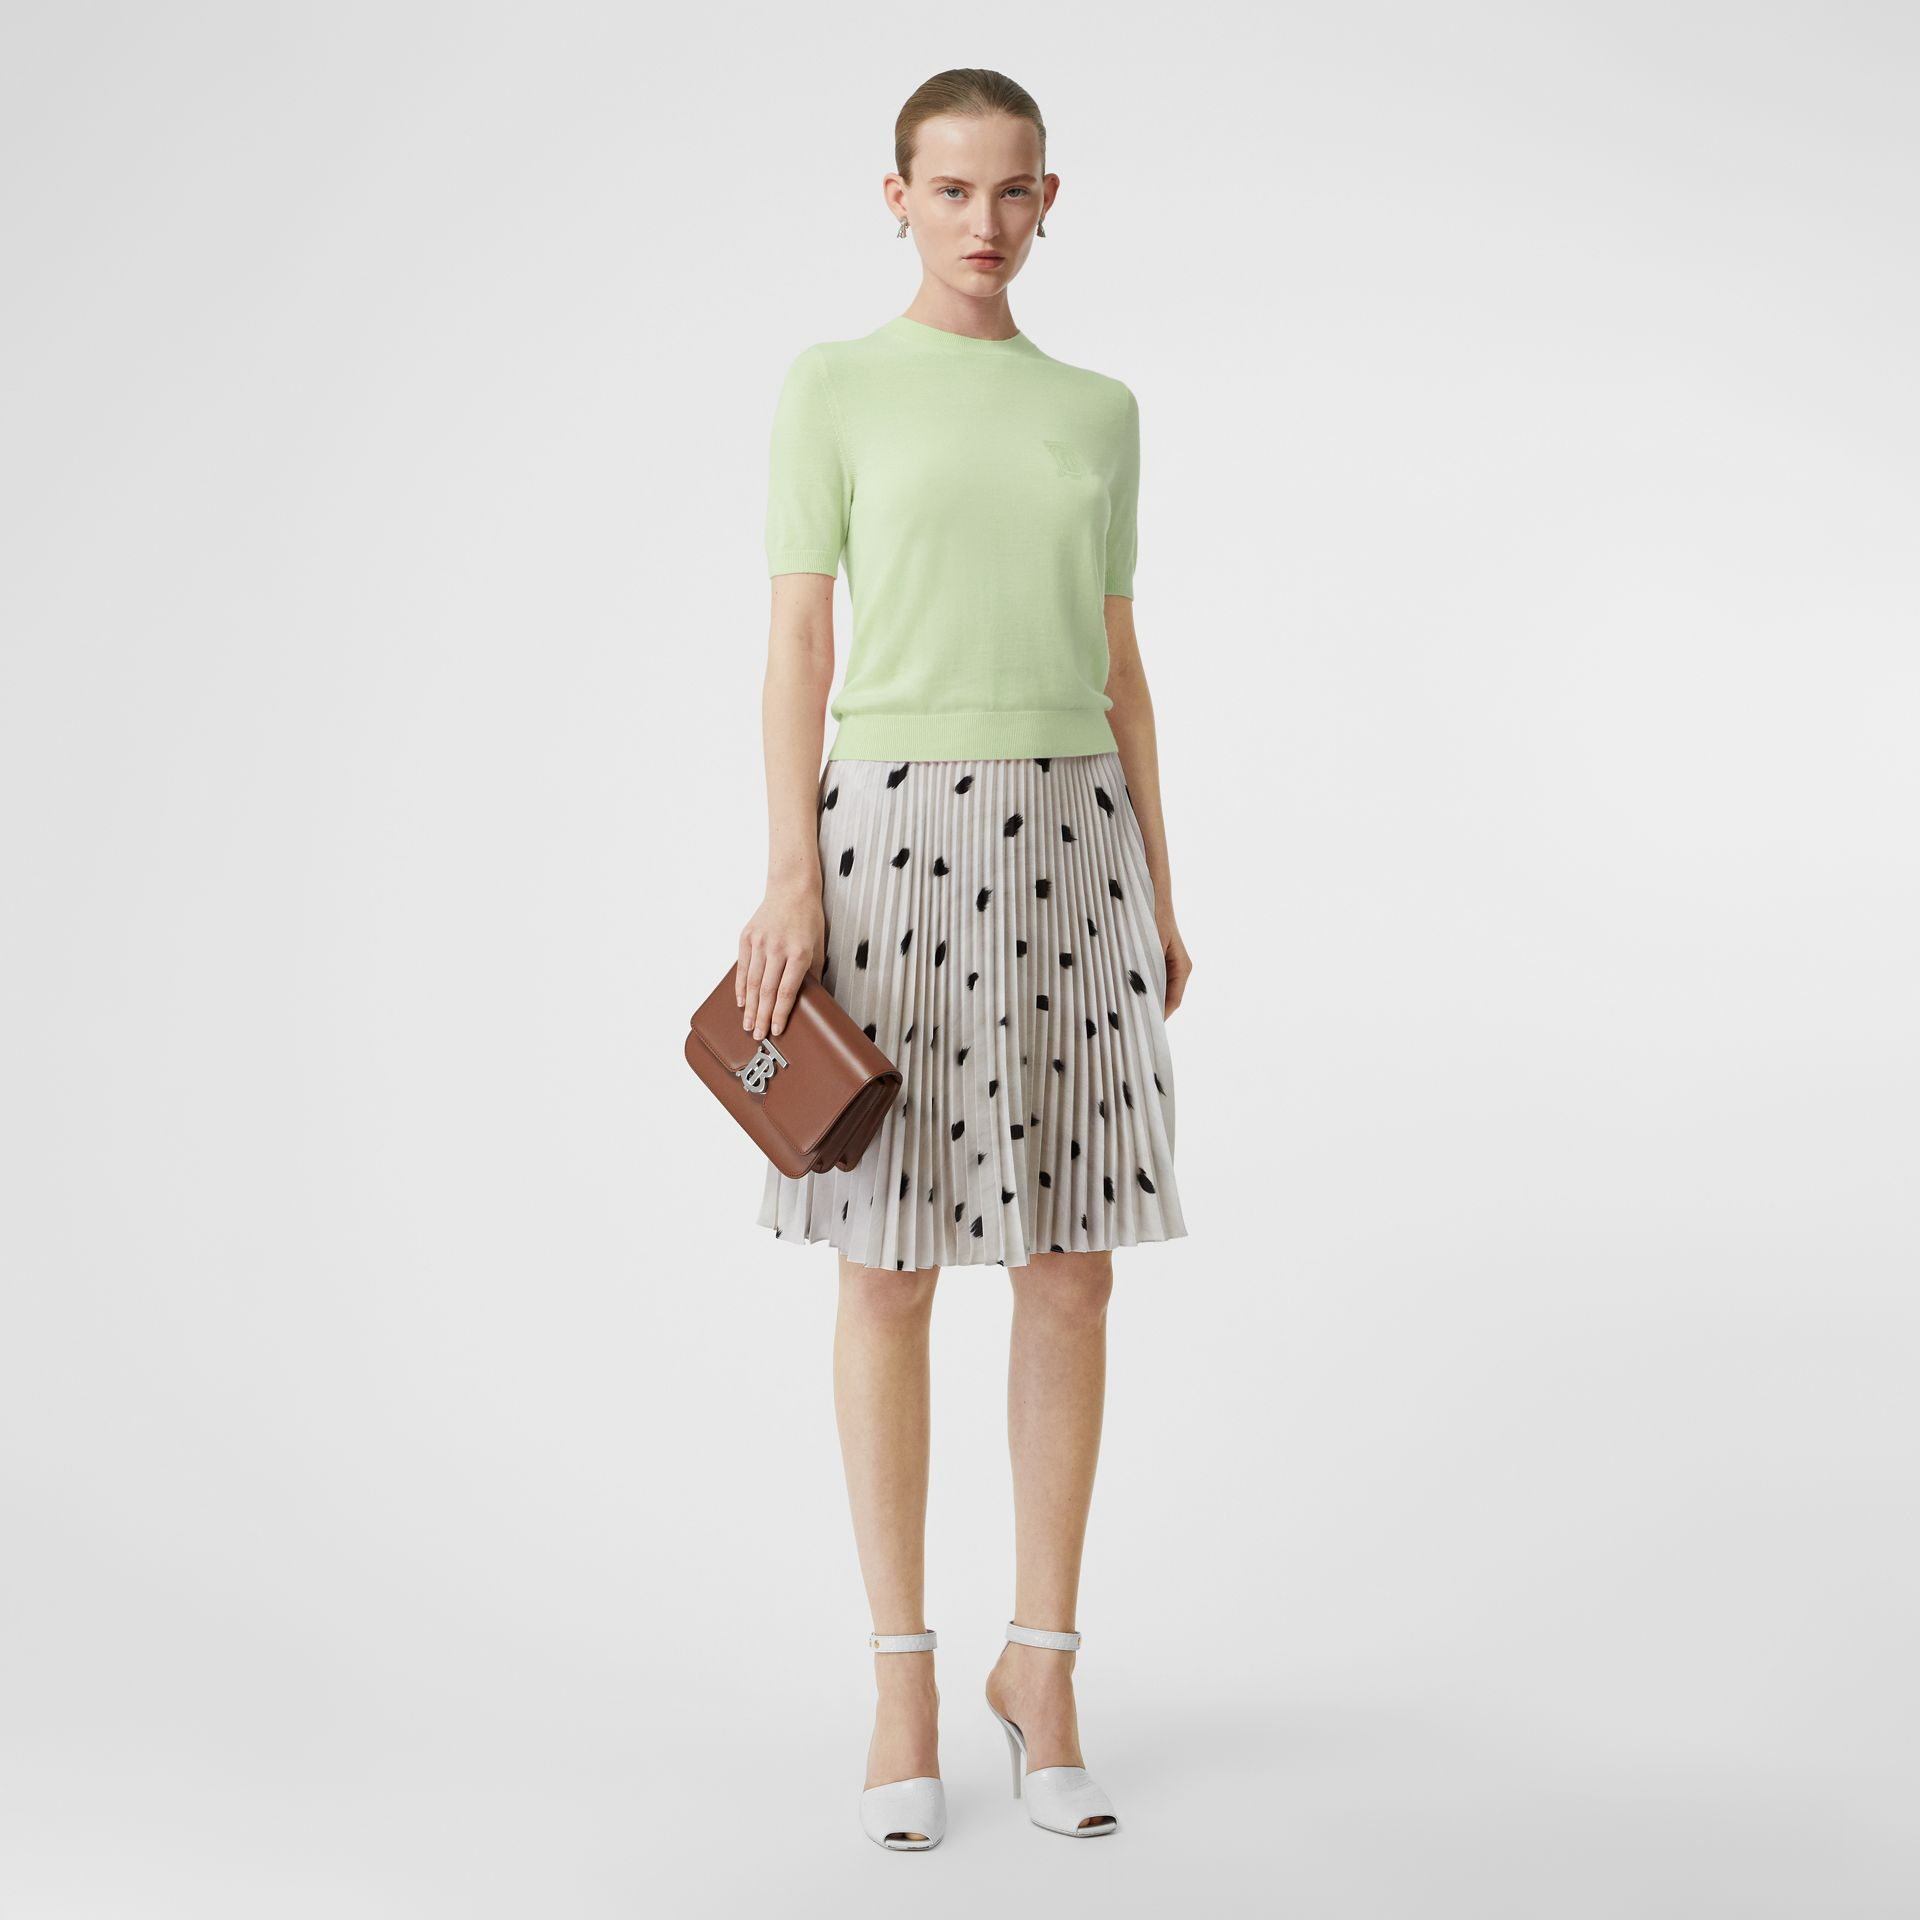 Monogram Motif Cashmere Top in Pistachio - Women | Burberry - gallery image 0